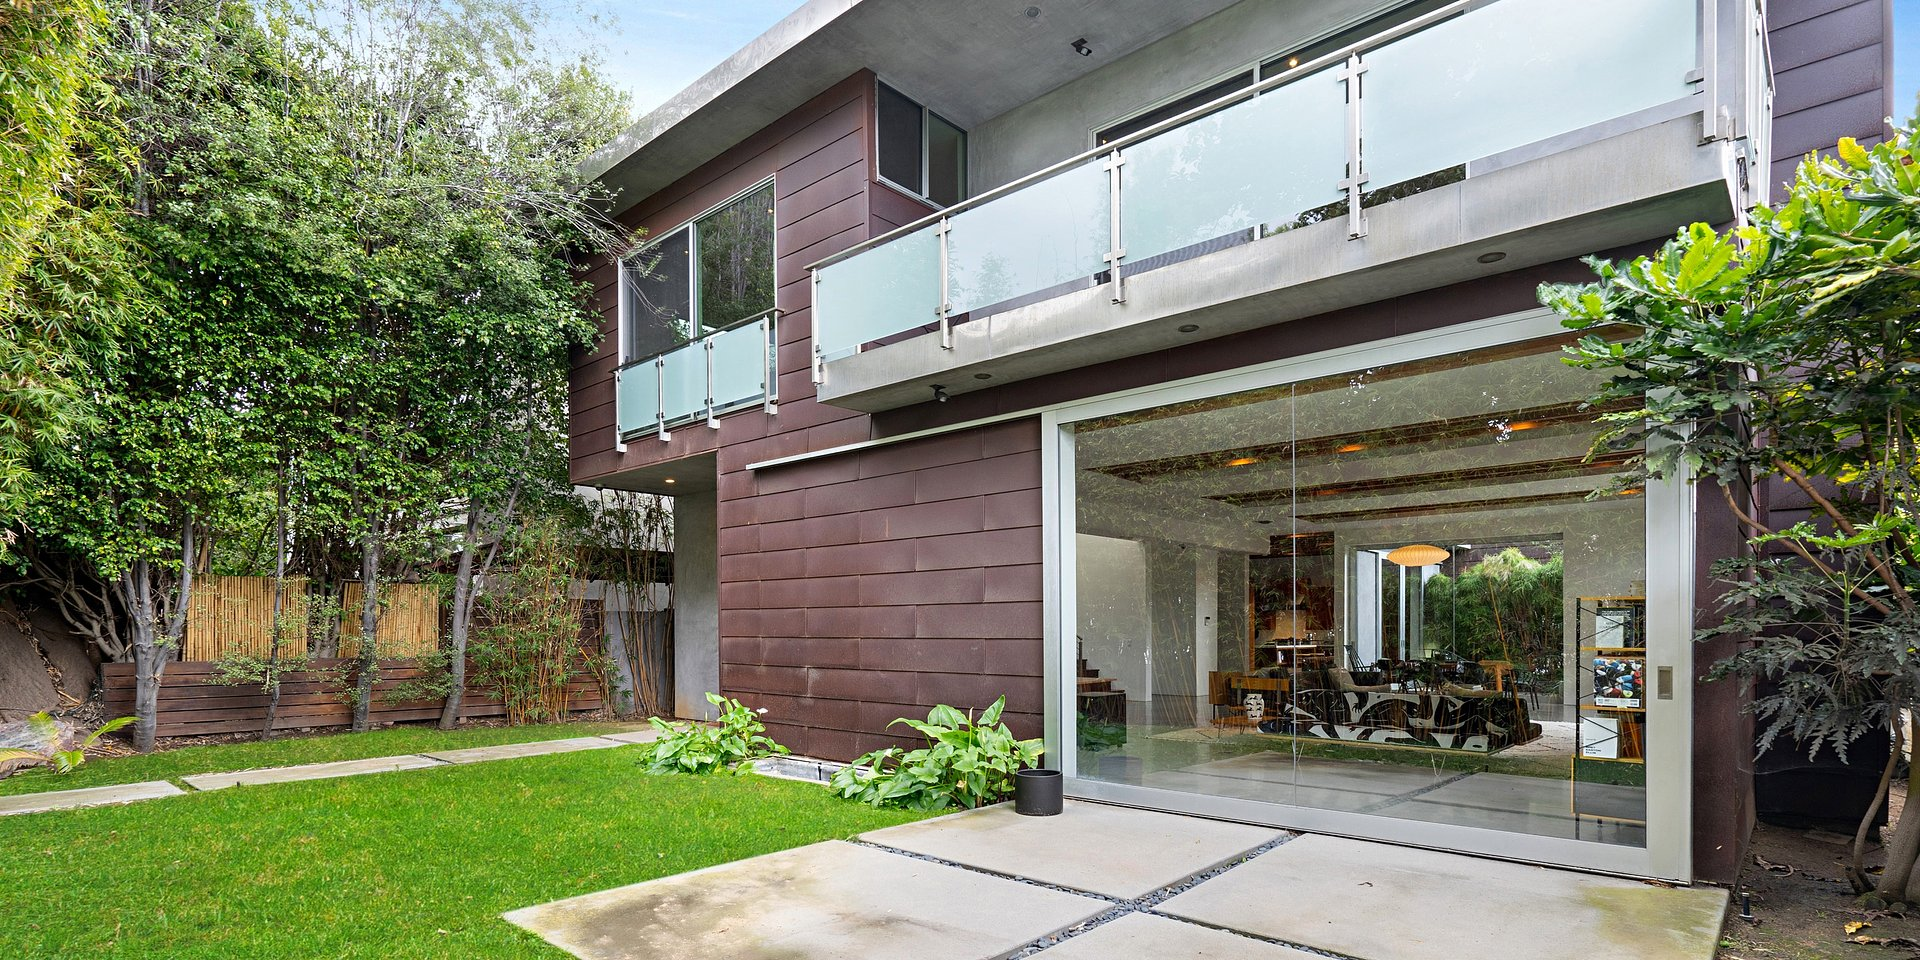 Coldwell Banker Realty Lists Marina del Rey Property with Rooftop Deck for $3.35 Million